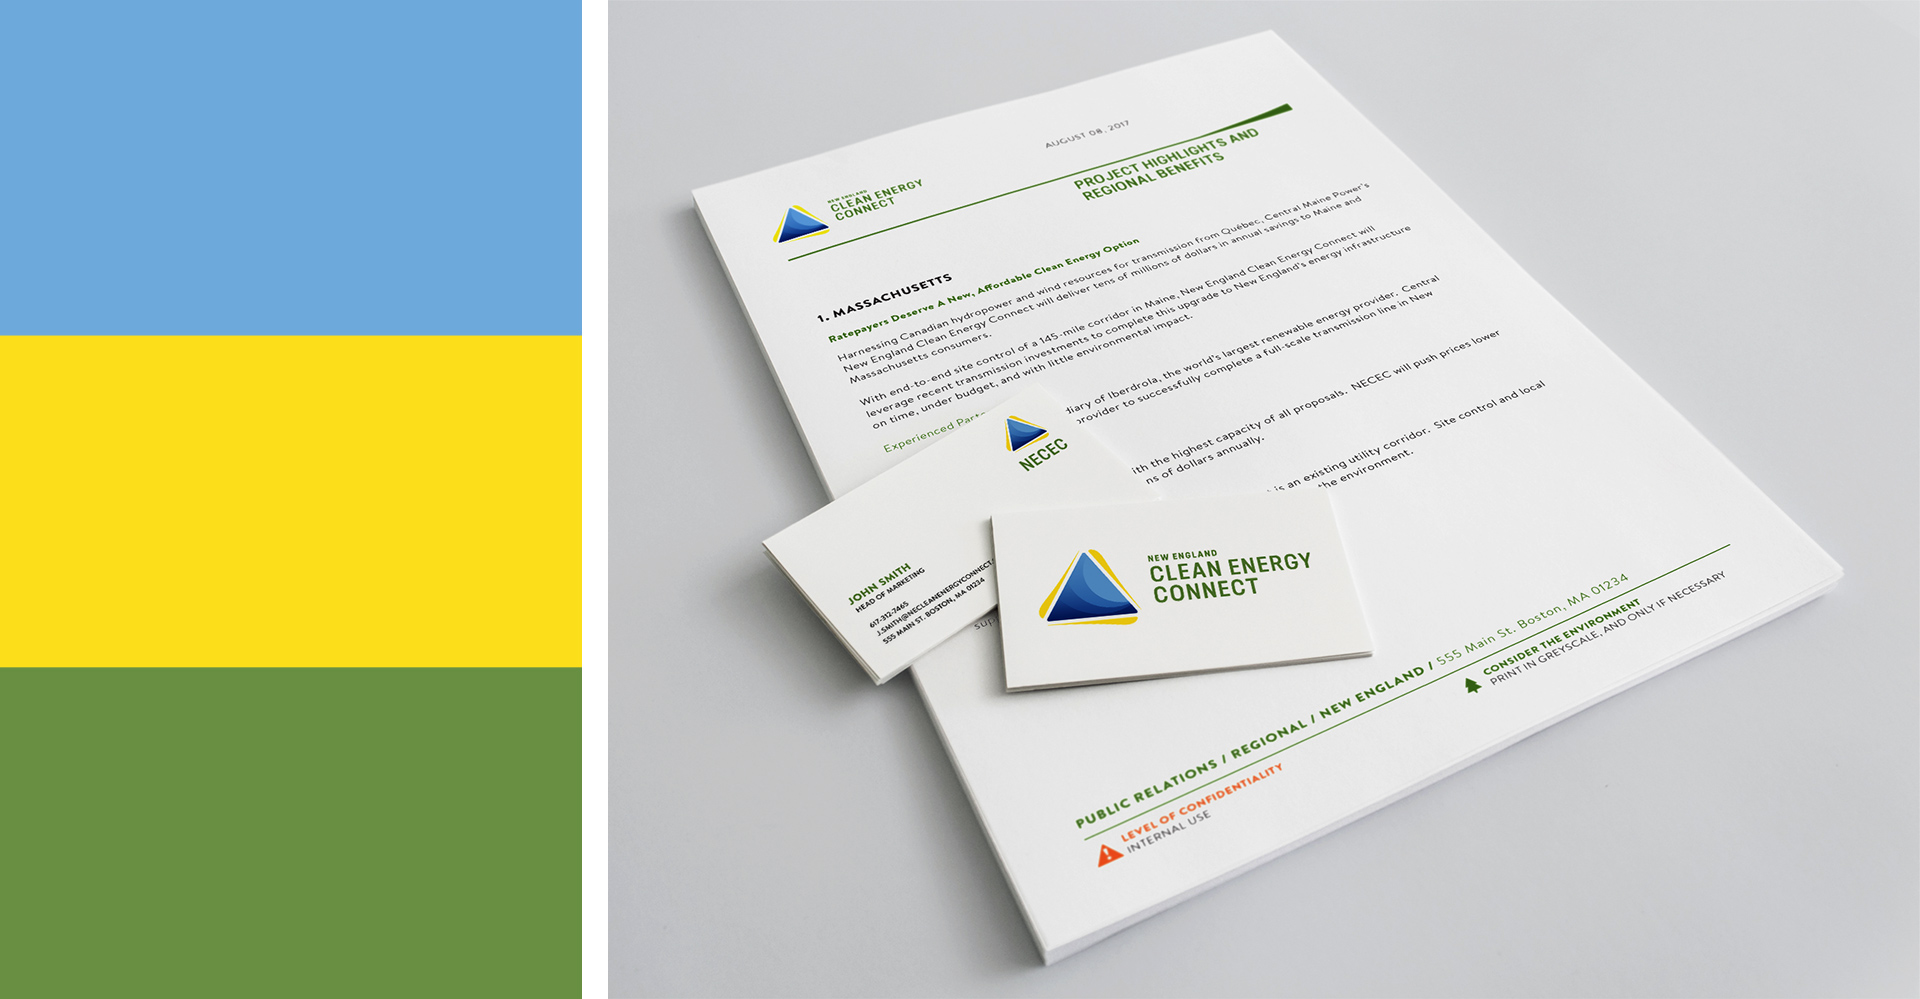 new_england_clean_energy_connect_02_letterhead_color.jpg